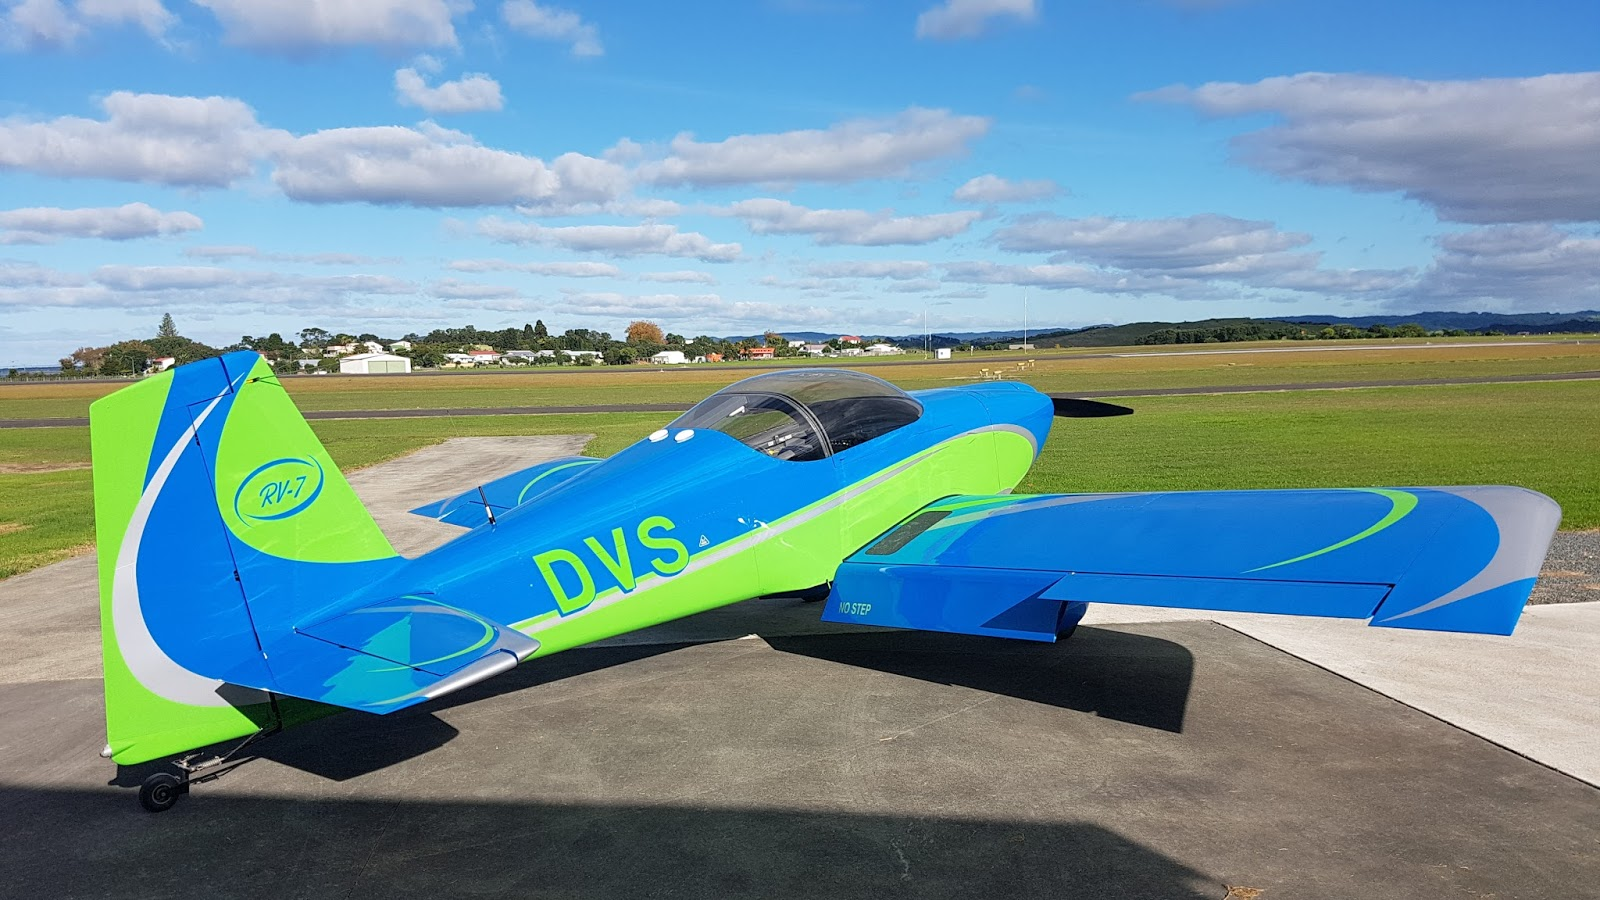 543b01921e Now Dean has sent photos of his aircraft painted in an attractive swirly  colour scheme